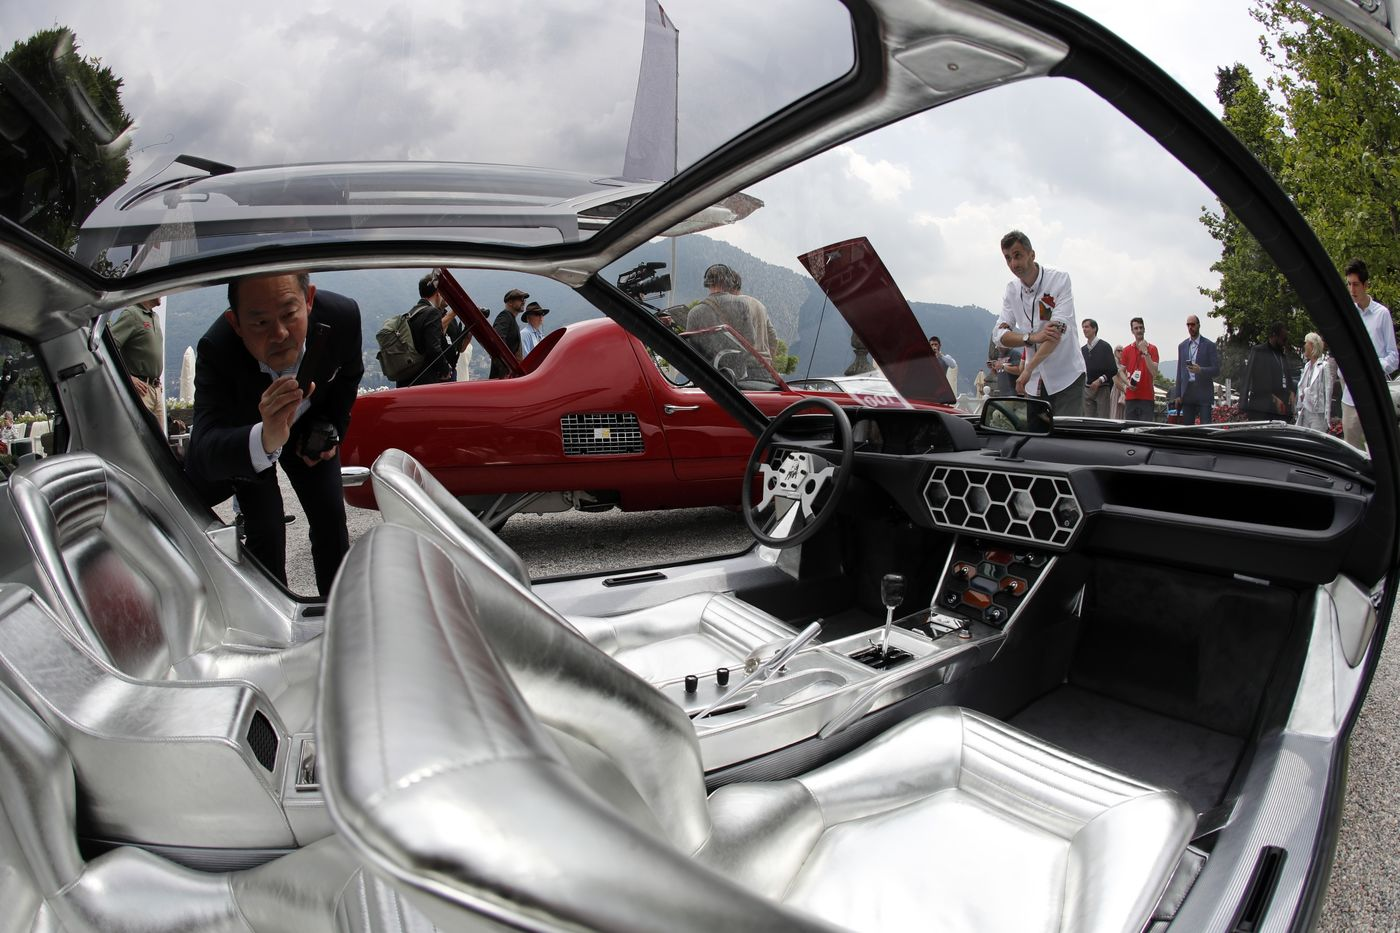 relates to The World's Rarest Cars on Show at Lake Como